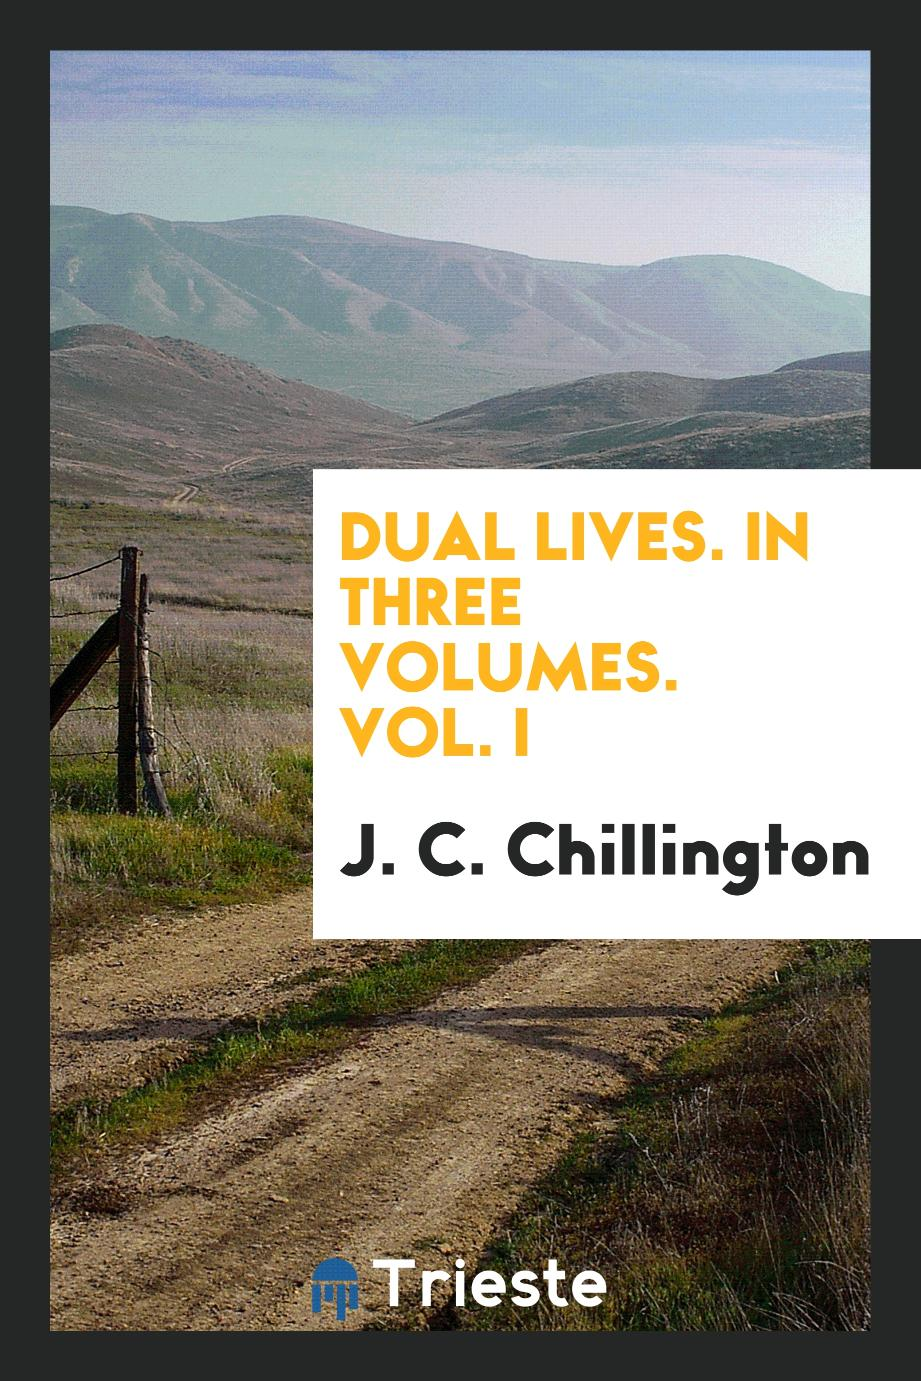 Dual lives. In three Volumes. Vol. I